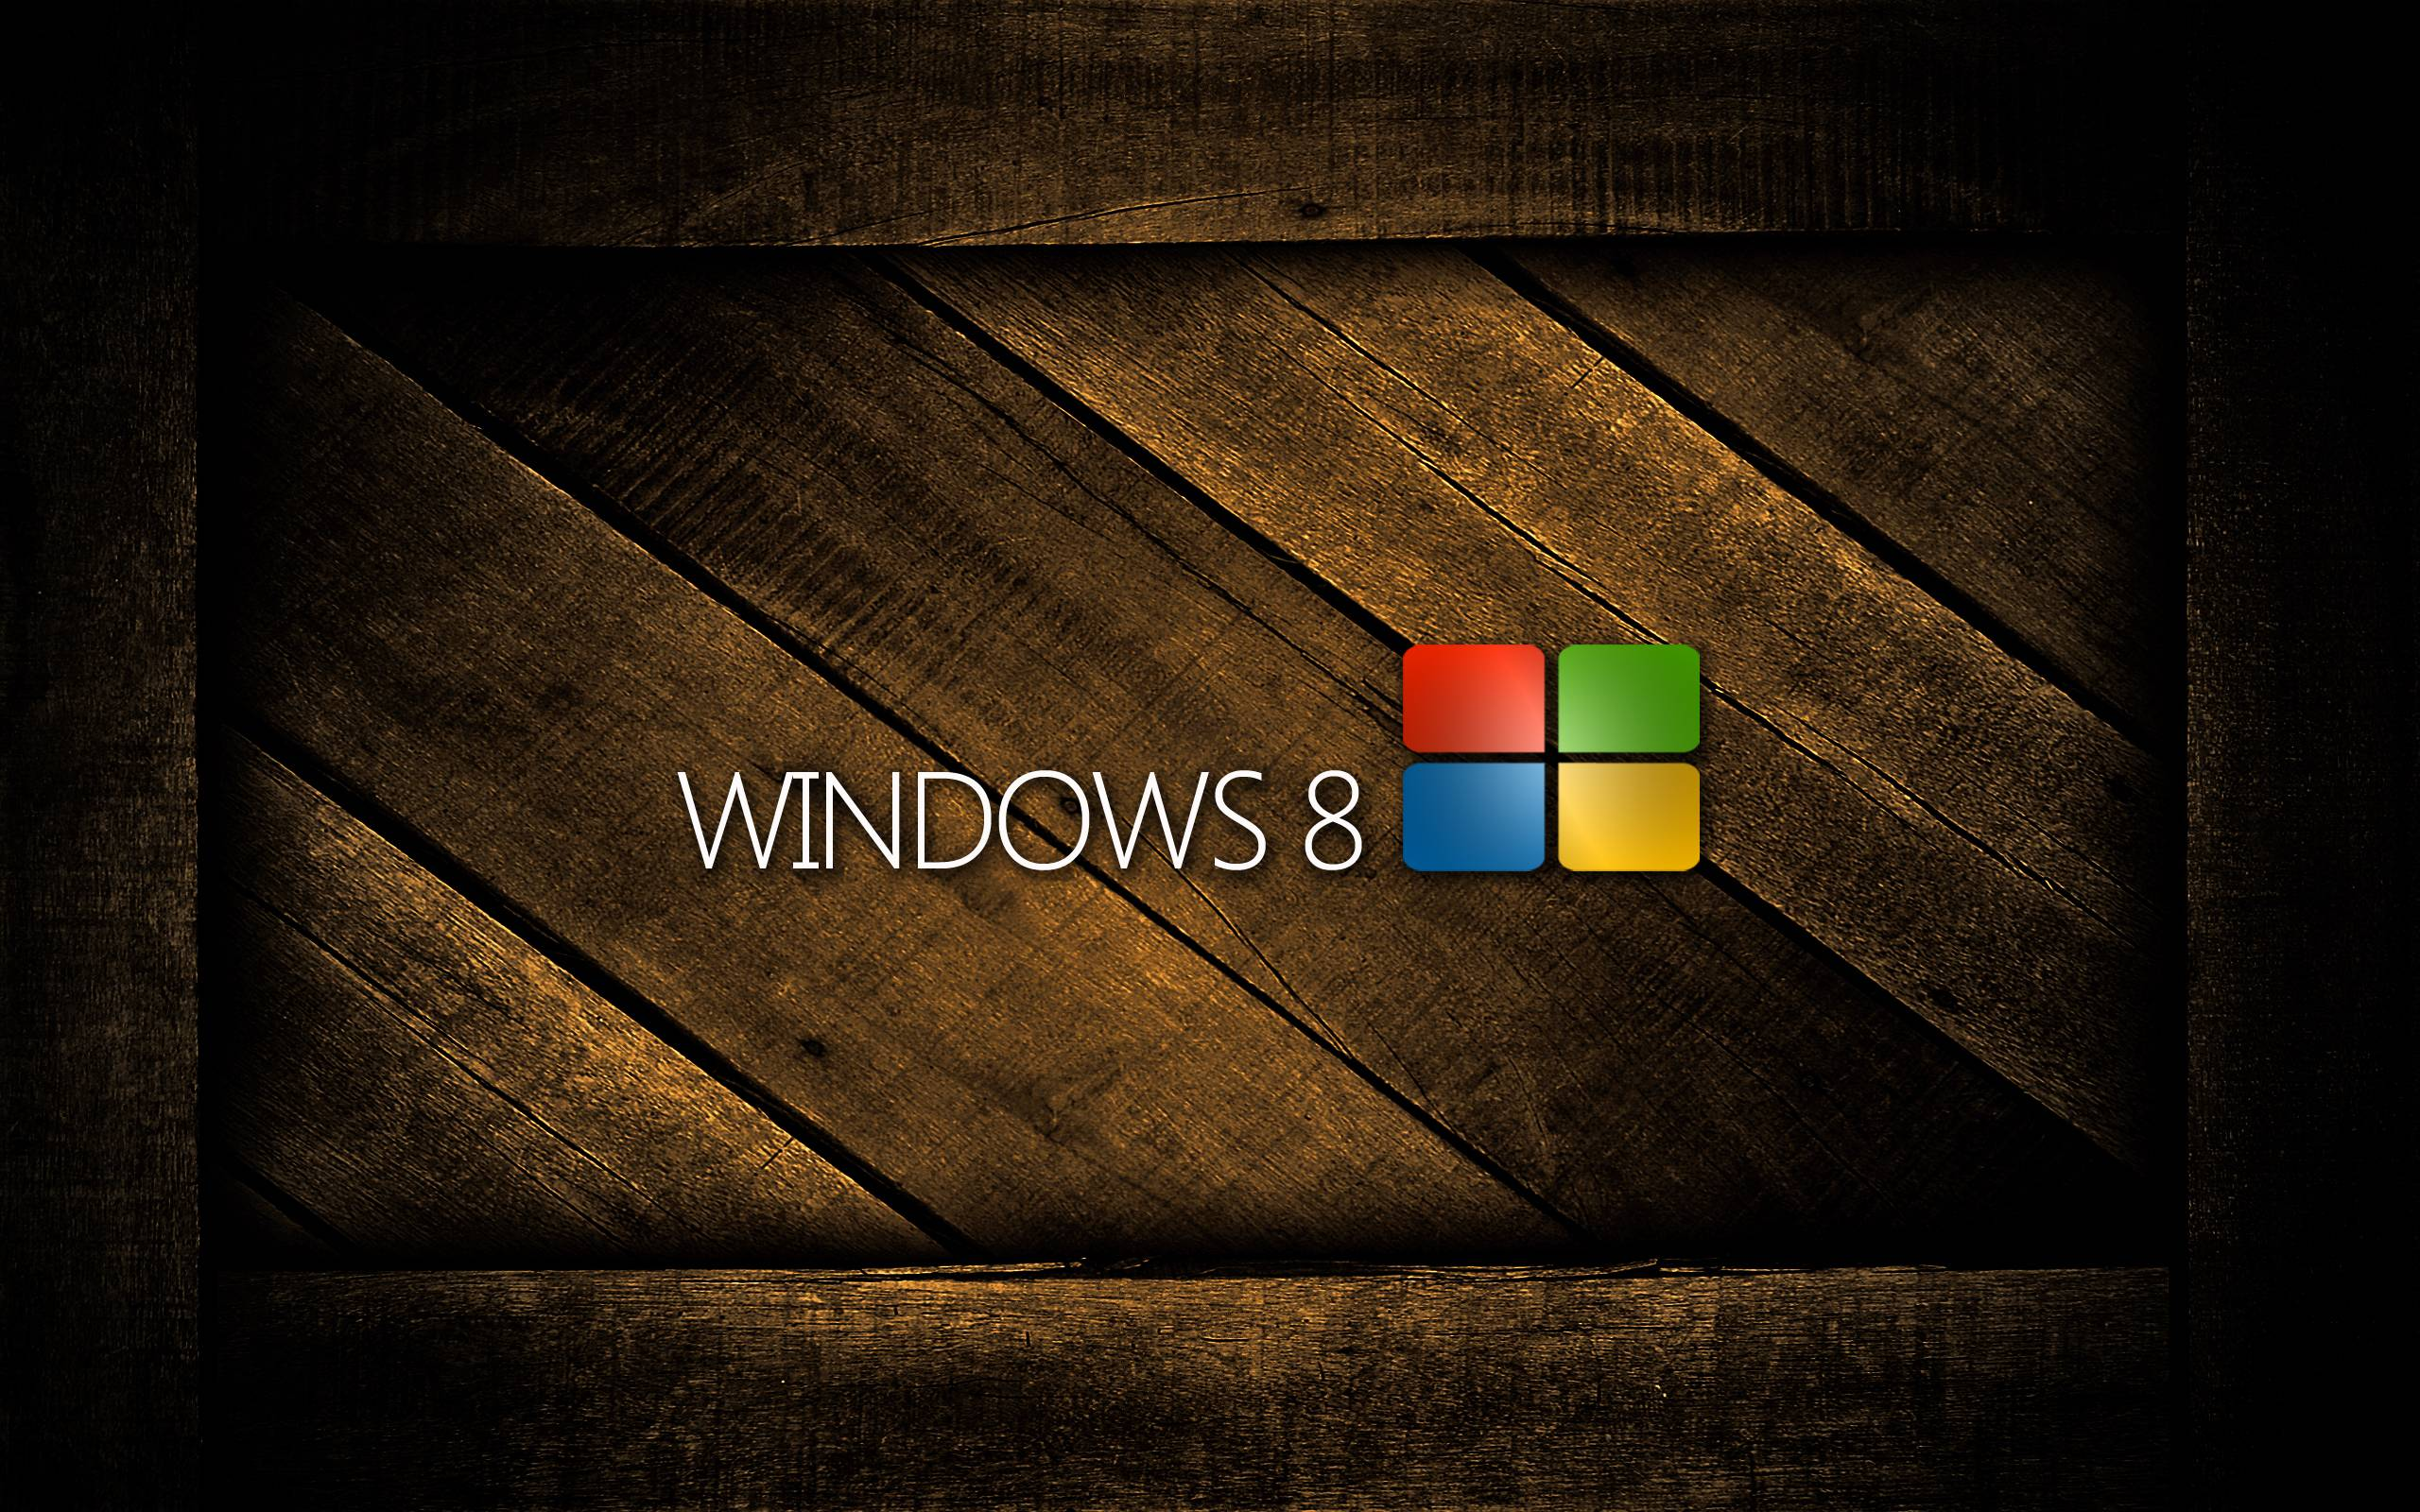 windows 8 hd wallpapers windows 8 wallpapers free download